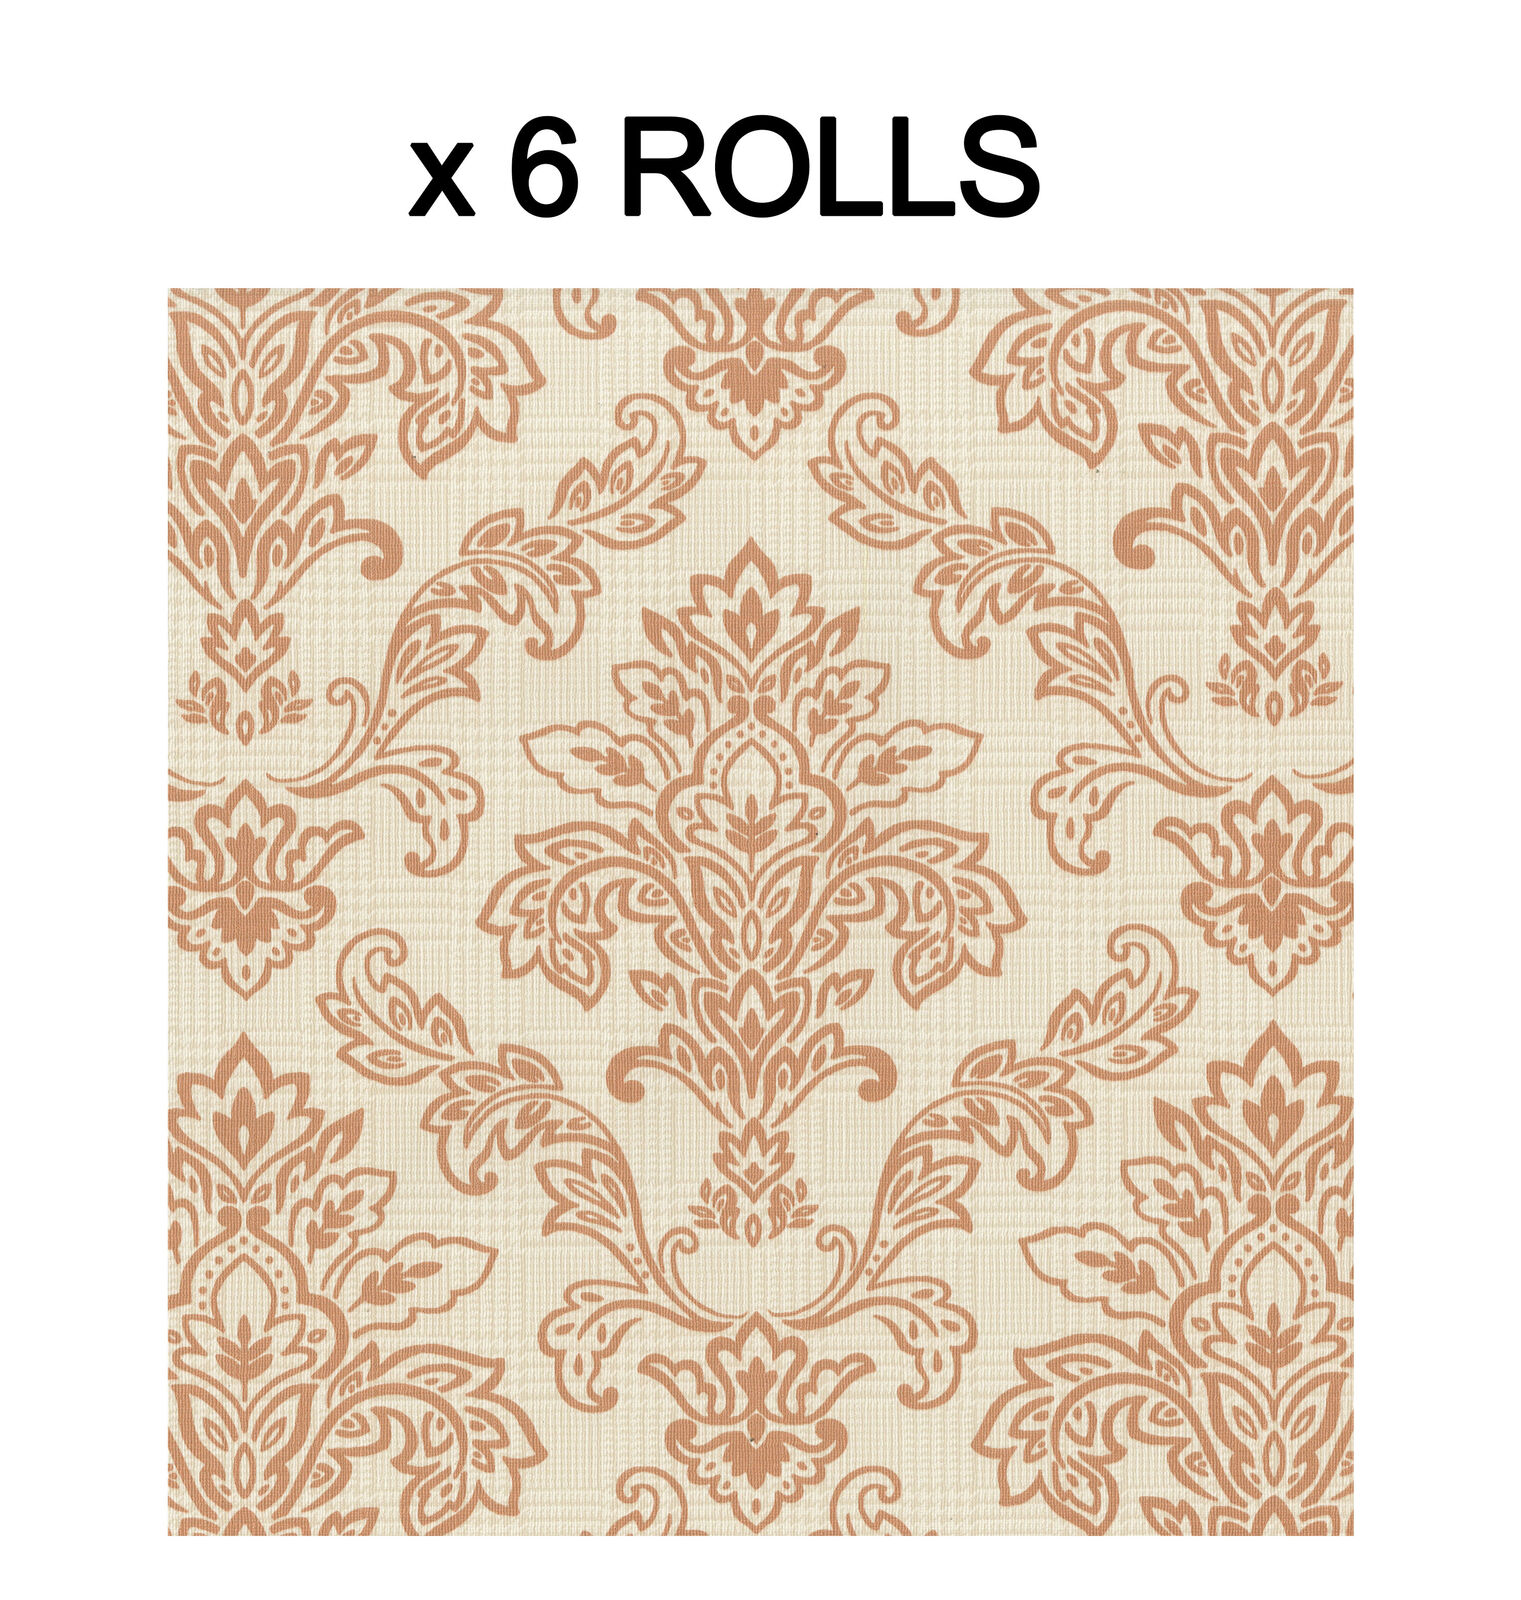 Orange Damask Wallpaper Modern Plaid Luxury Paste The Paper Washable 6 Rolls